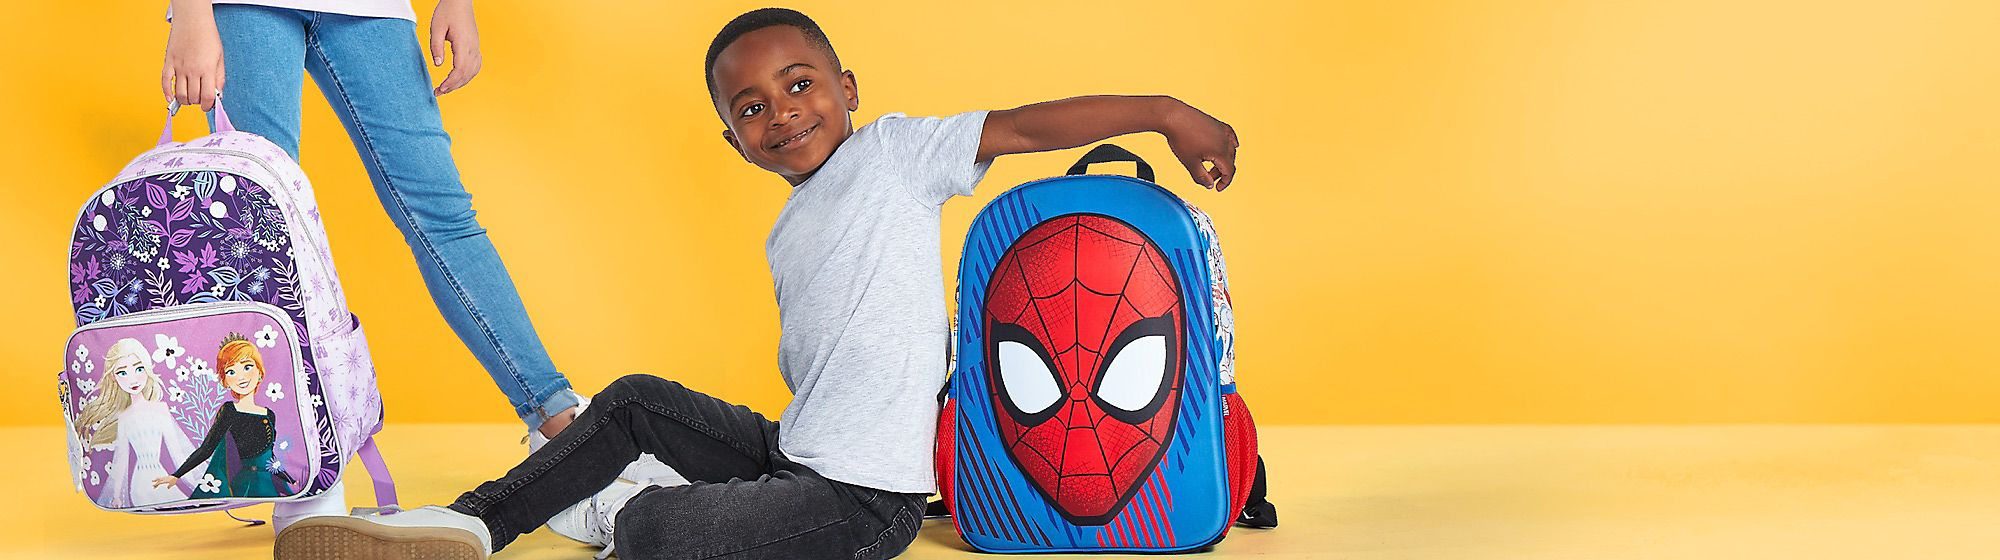 New school year, new Disney gear! Get your Disney, Pixar, Star Wars and Marvel backpacks, stationery, lunch boxes and more